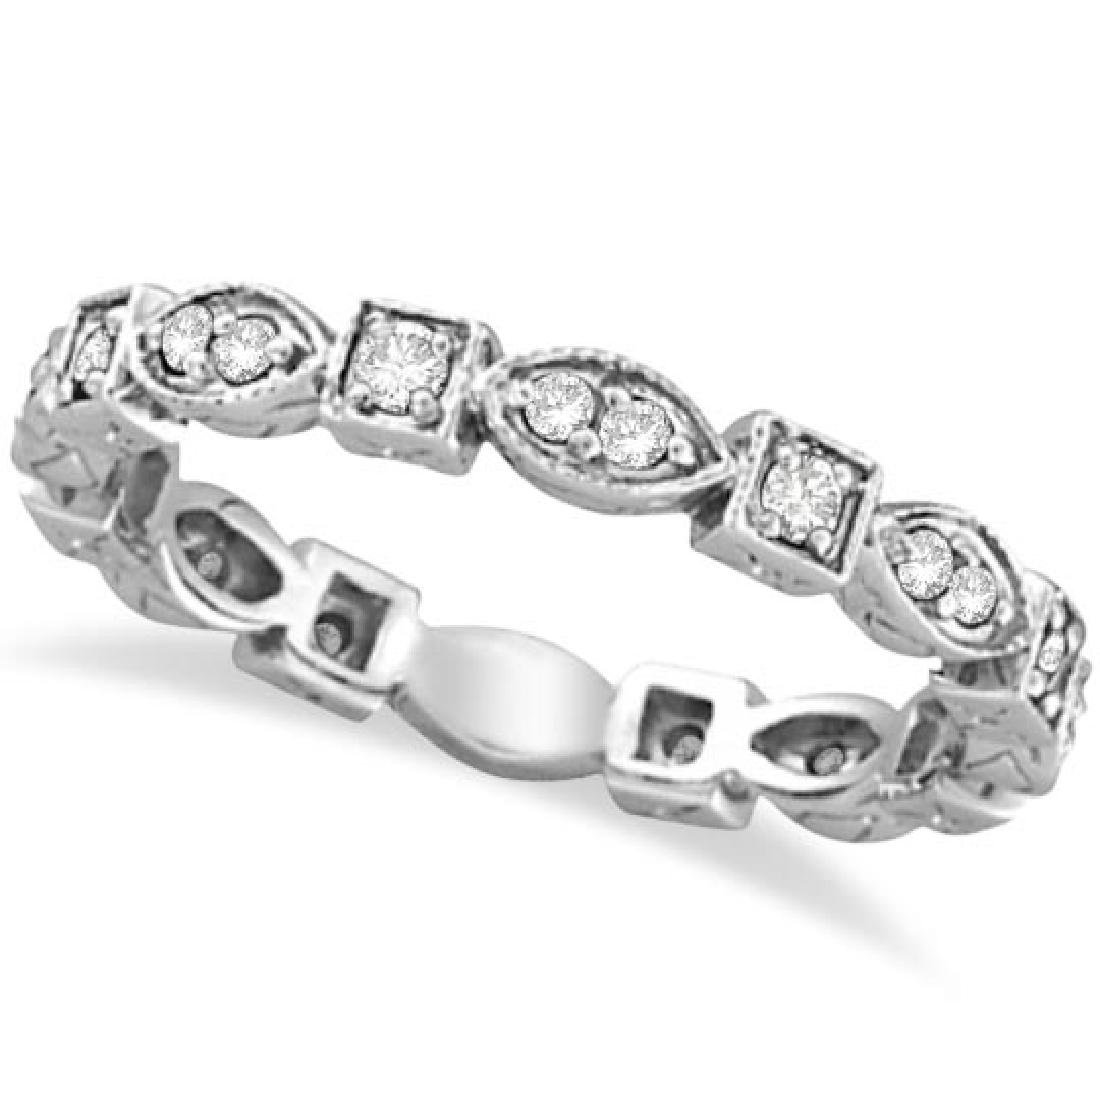 Antique Style Diamond Eternity Ring Band in 14k White G